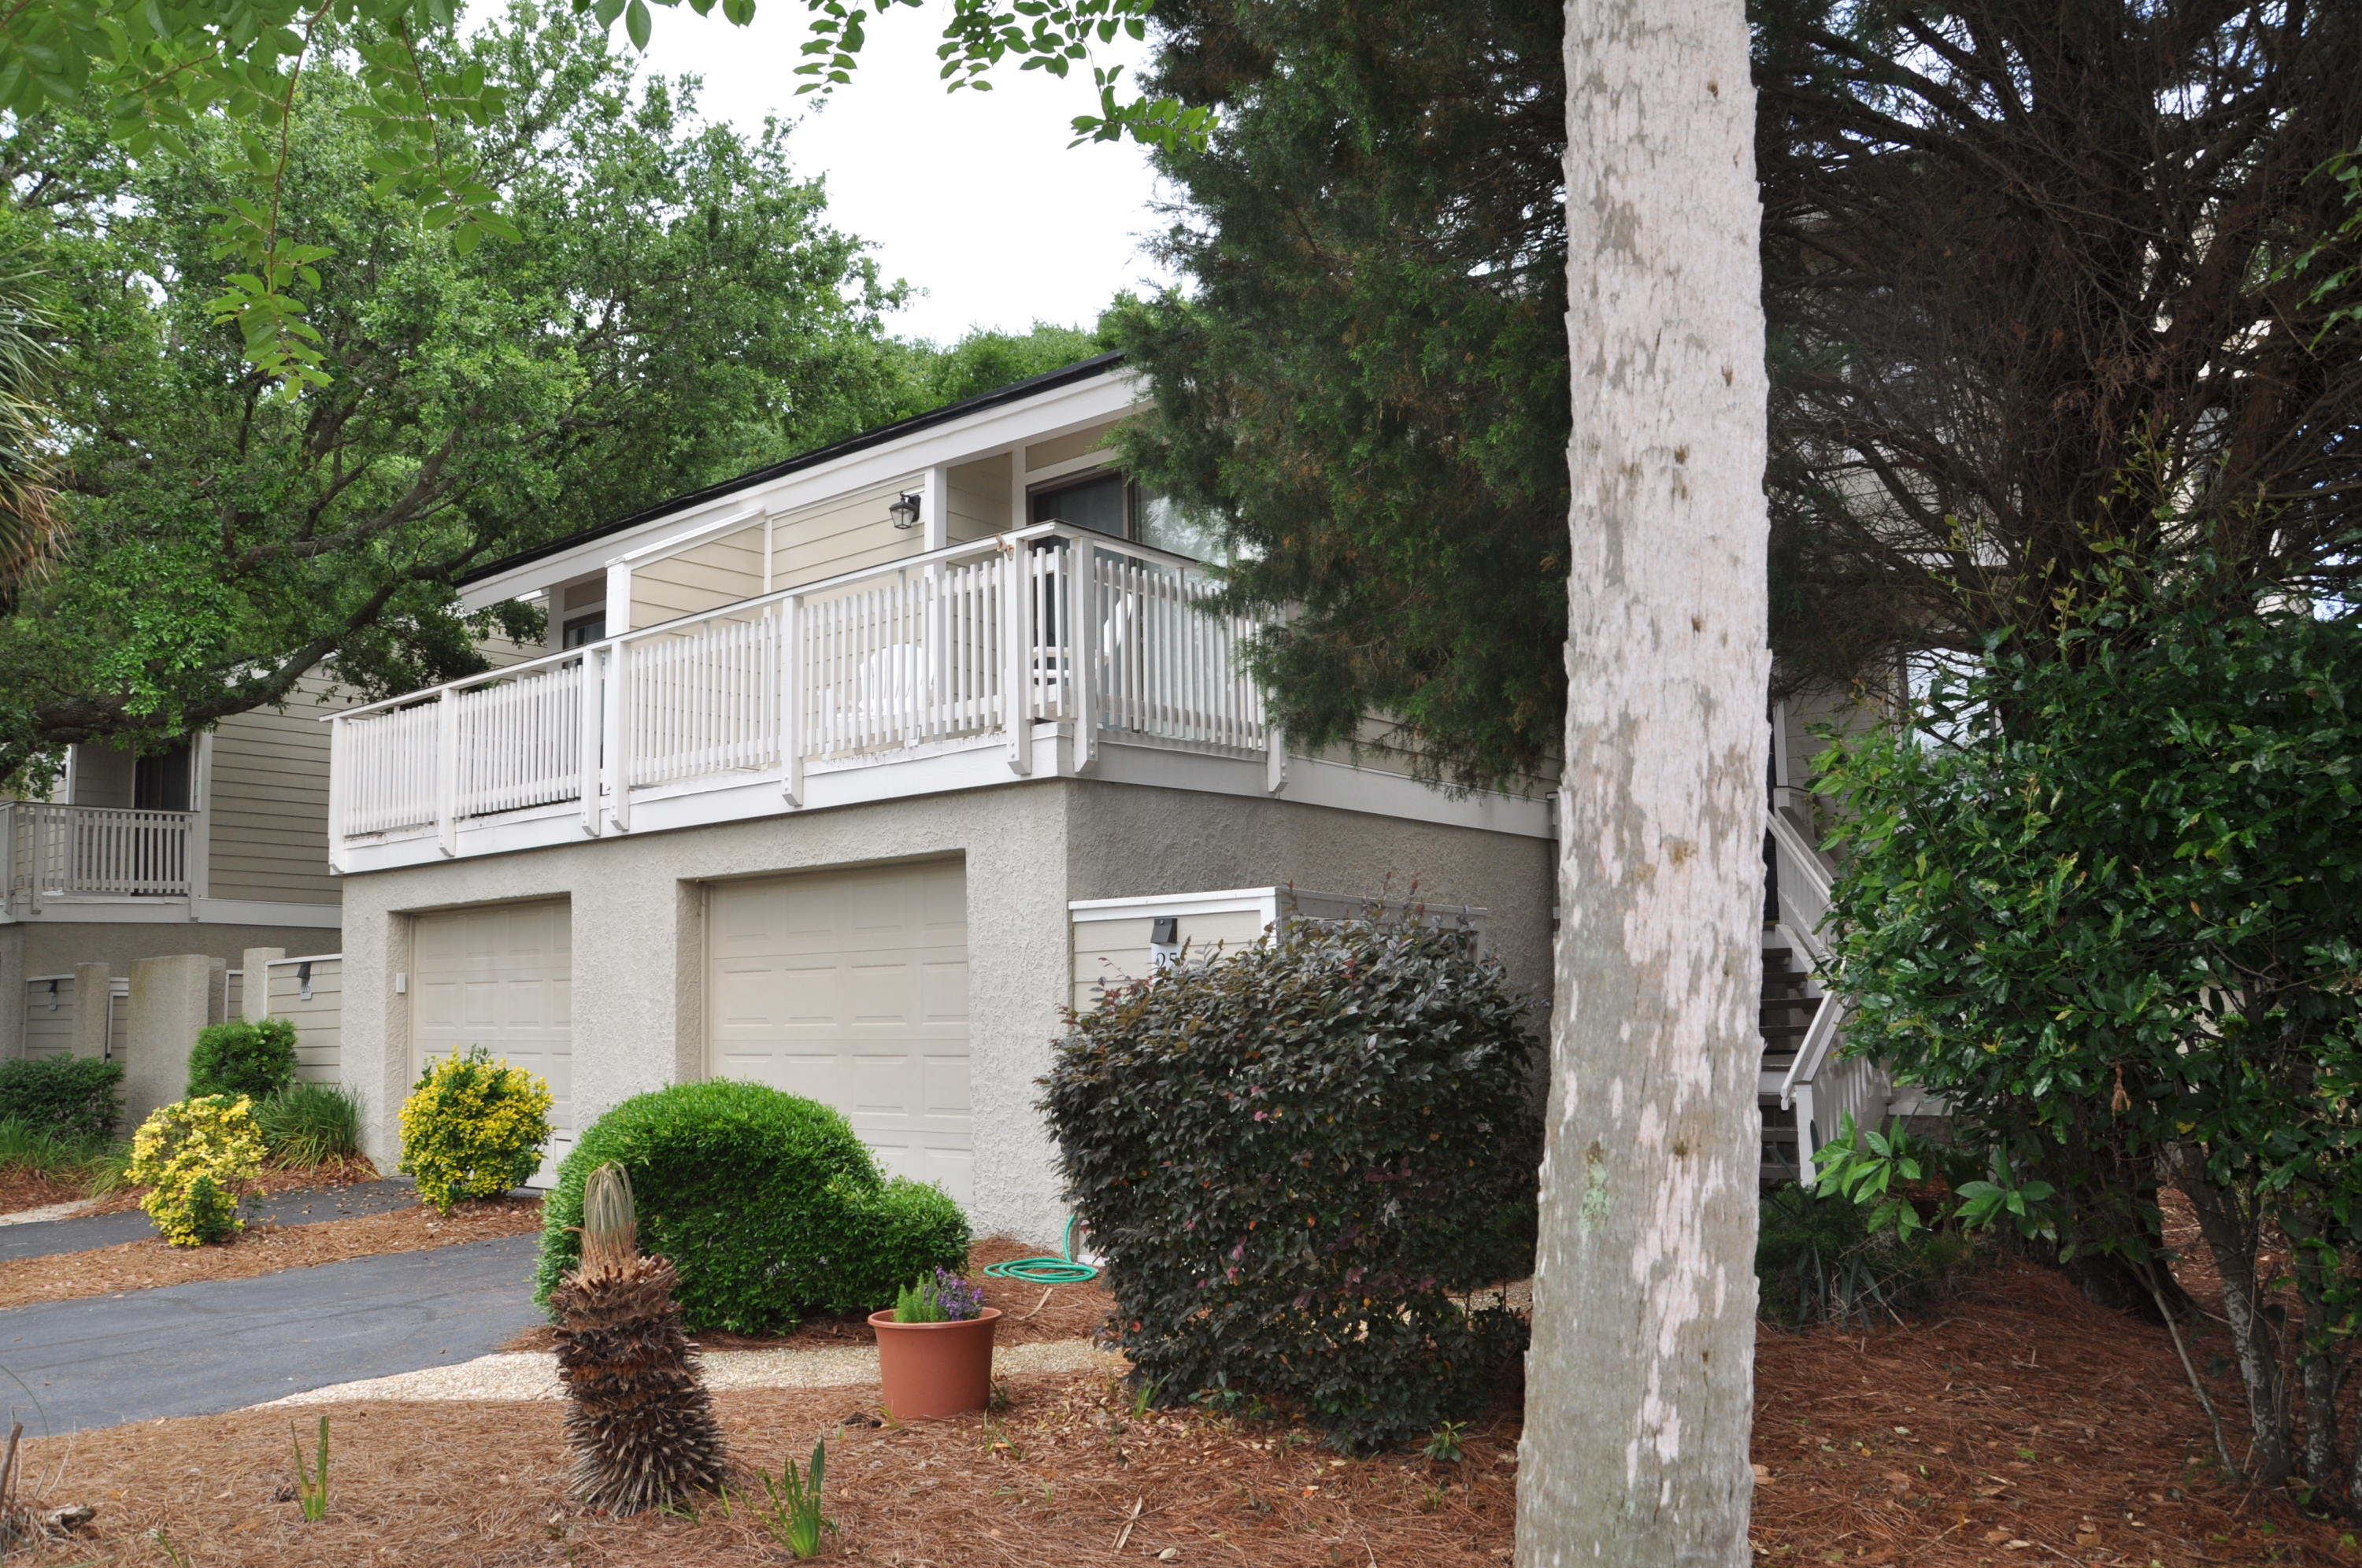 Fairway Villas Homes For Sale - 25 Fairway Dunes (1/6 Share), Isle of Palms, SC - 34